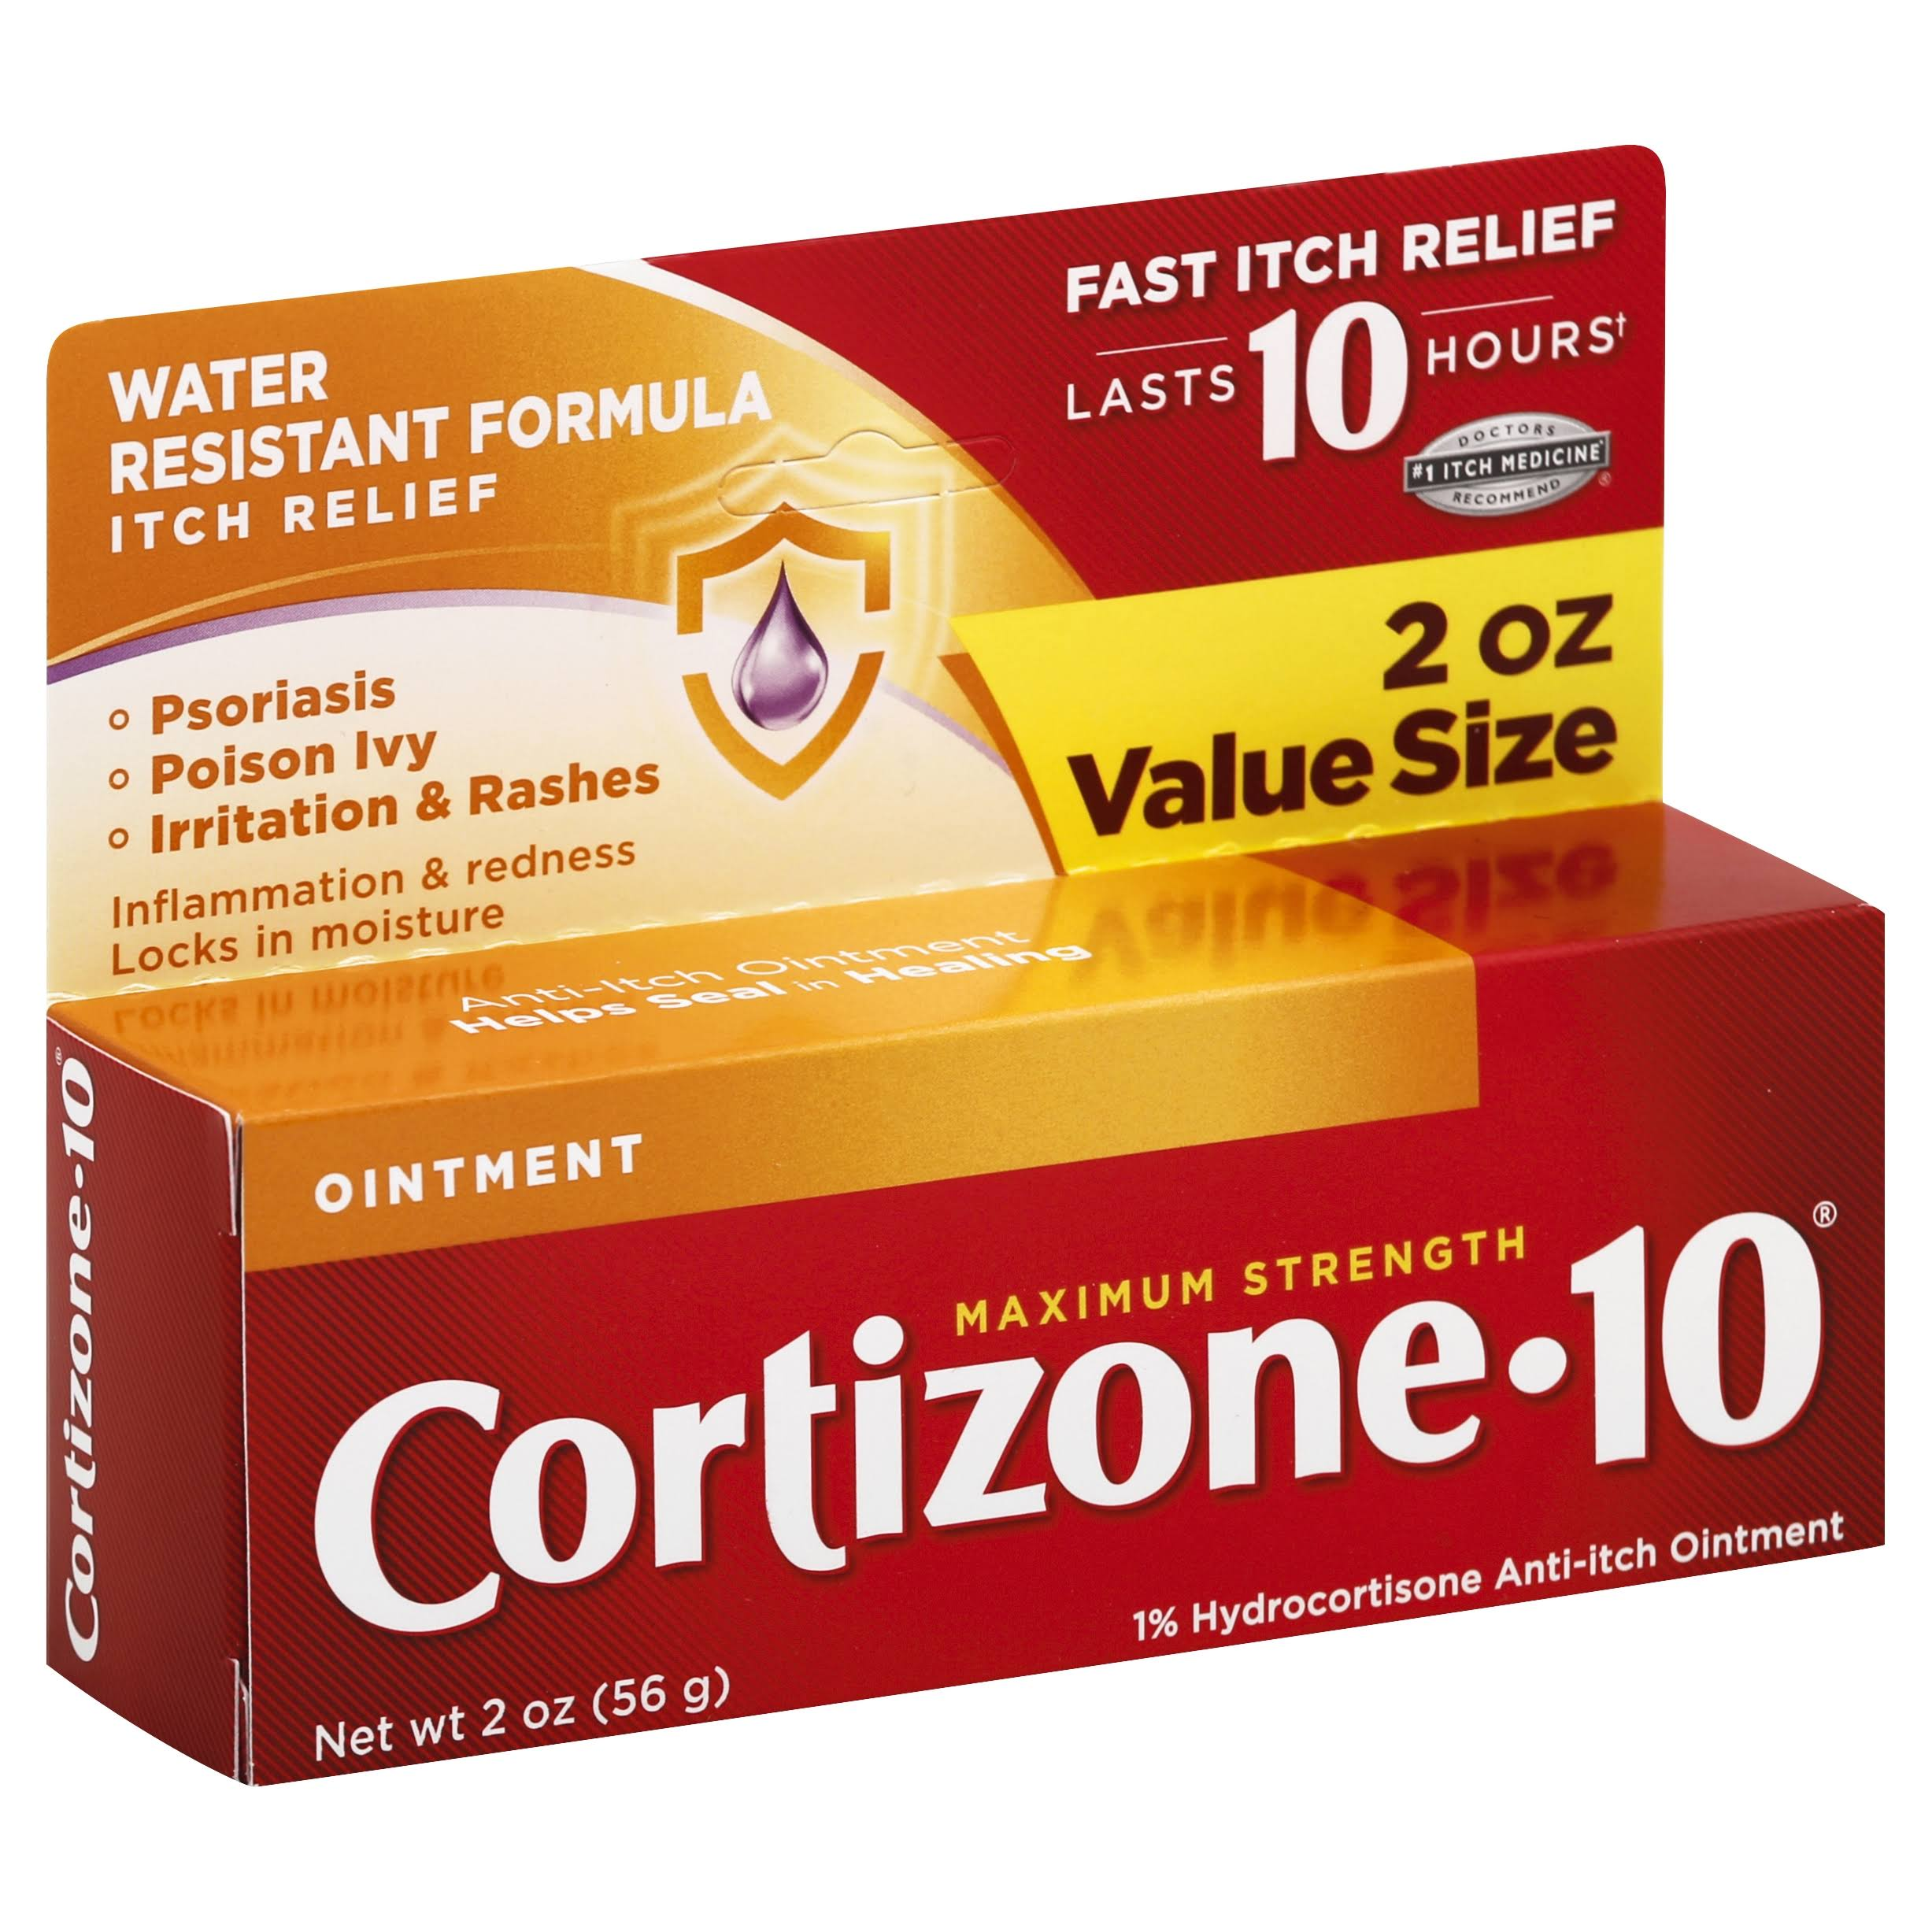 Cortizone-10 Maximum Strength Anti-Itch Ointment - 2oz